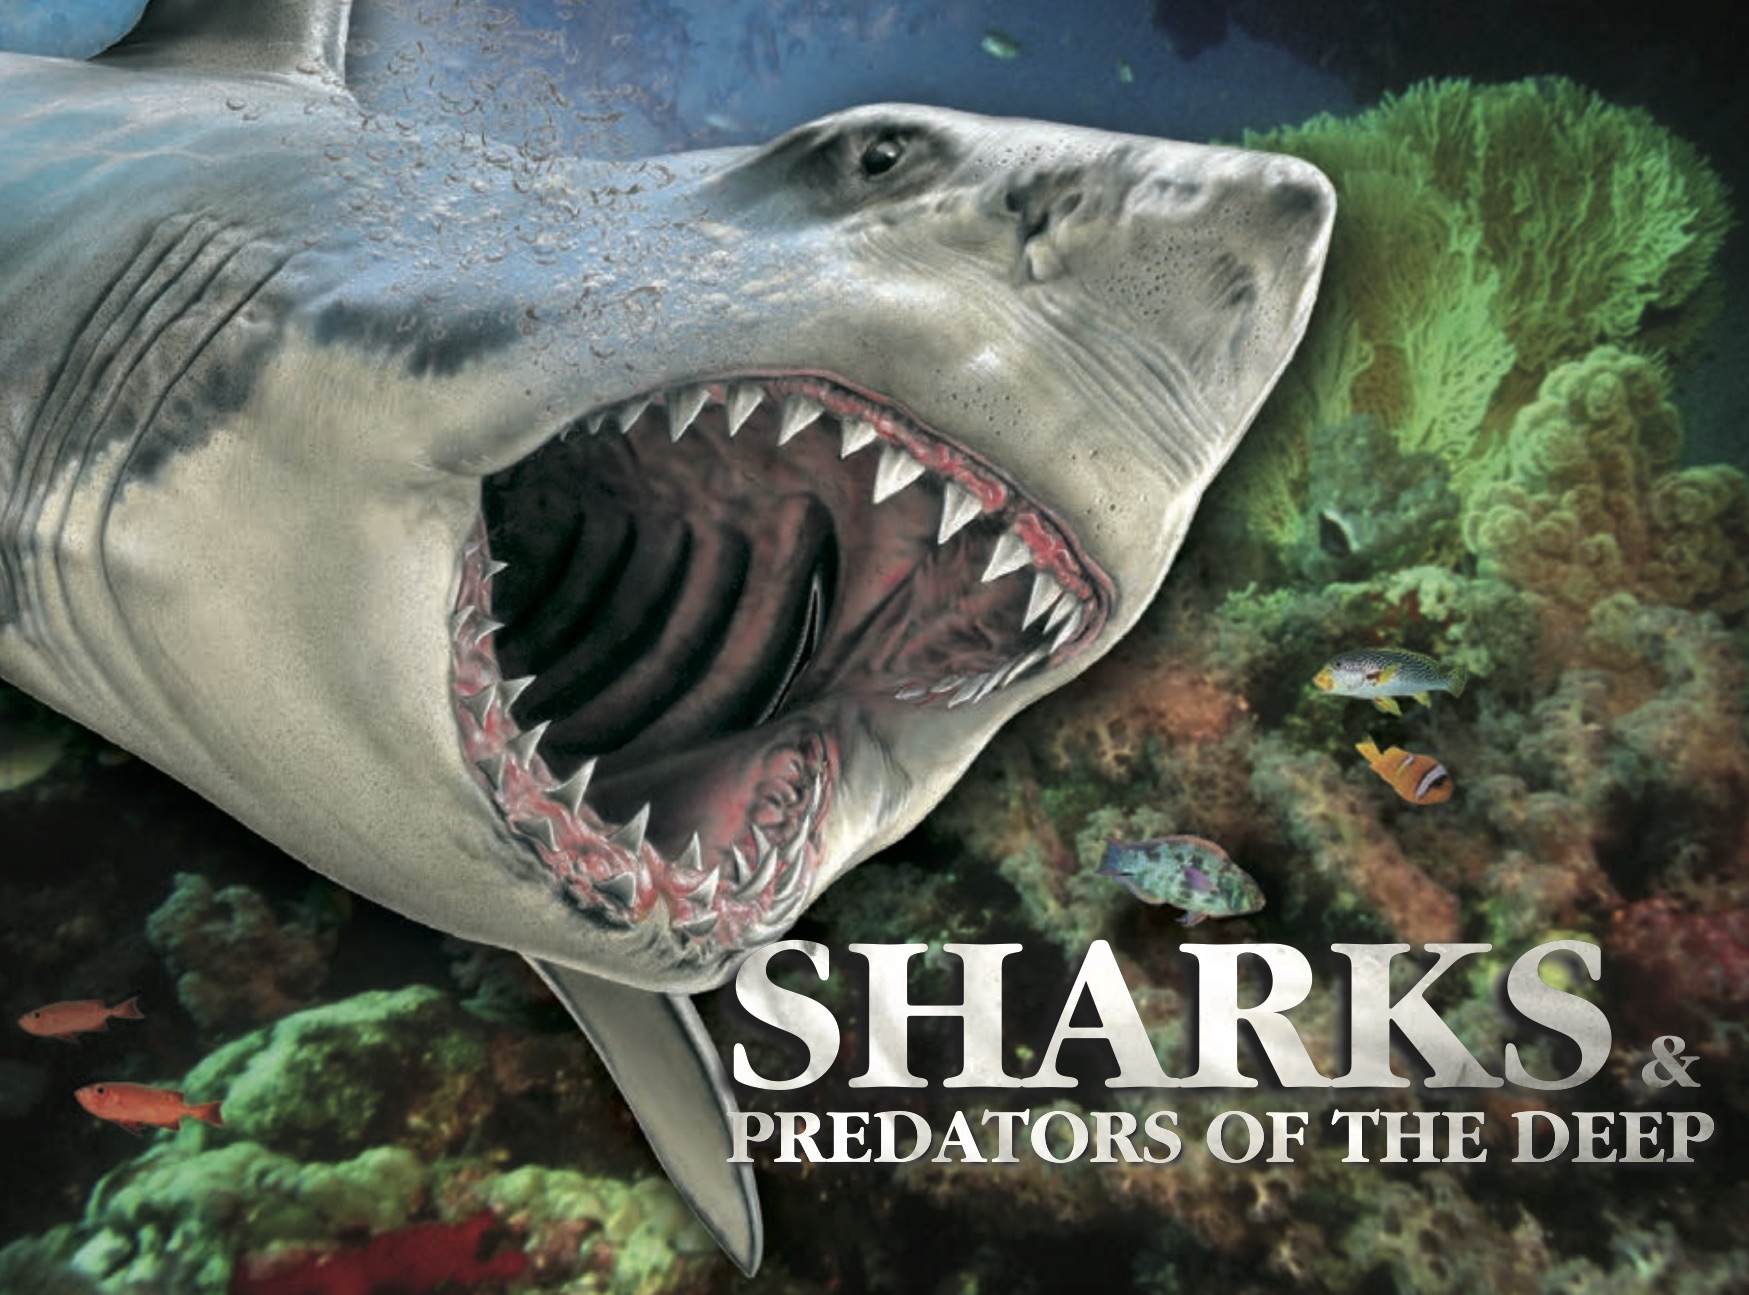 Sharks & Predators of the Deep